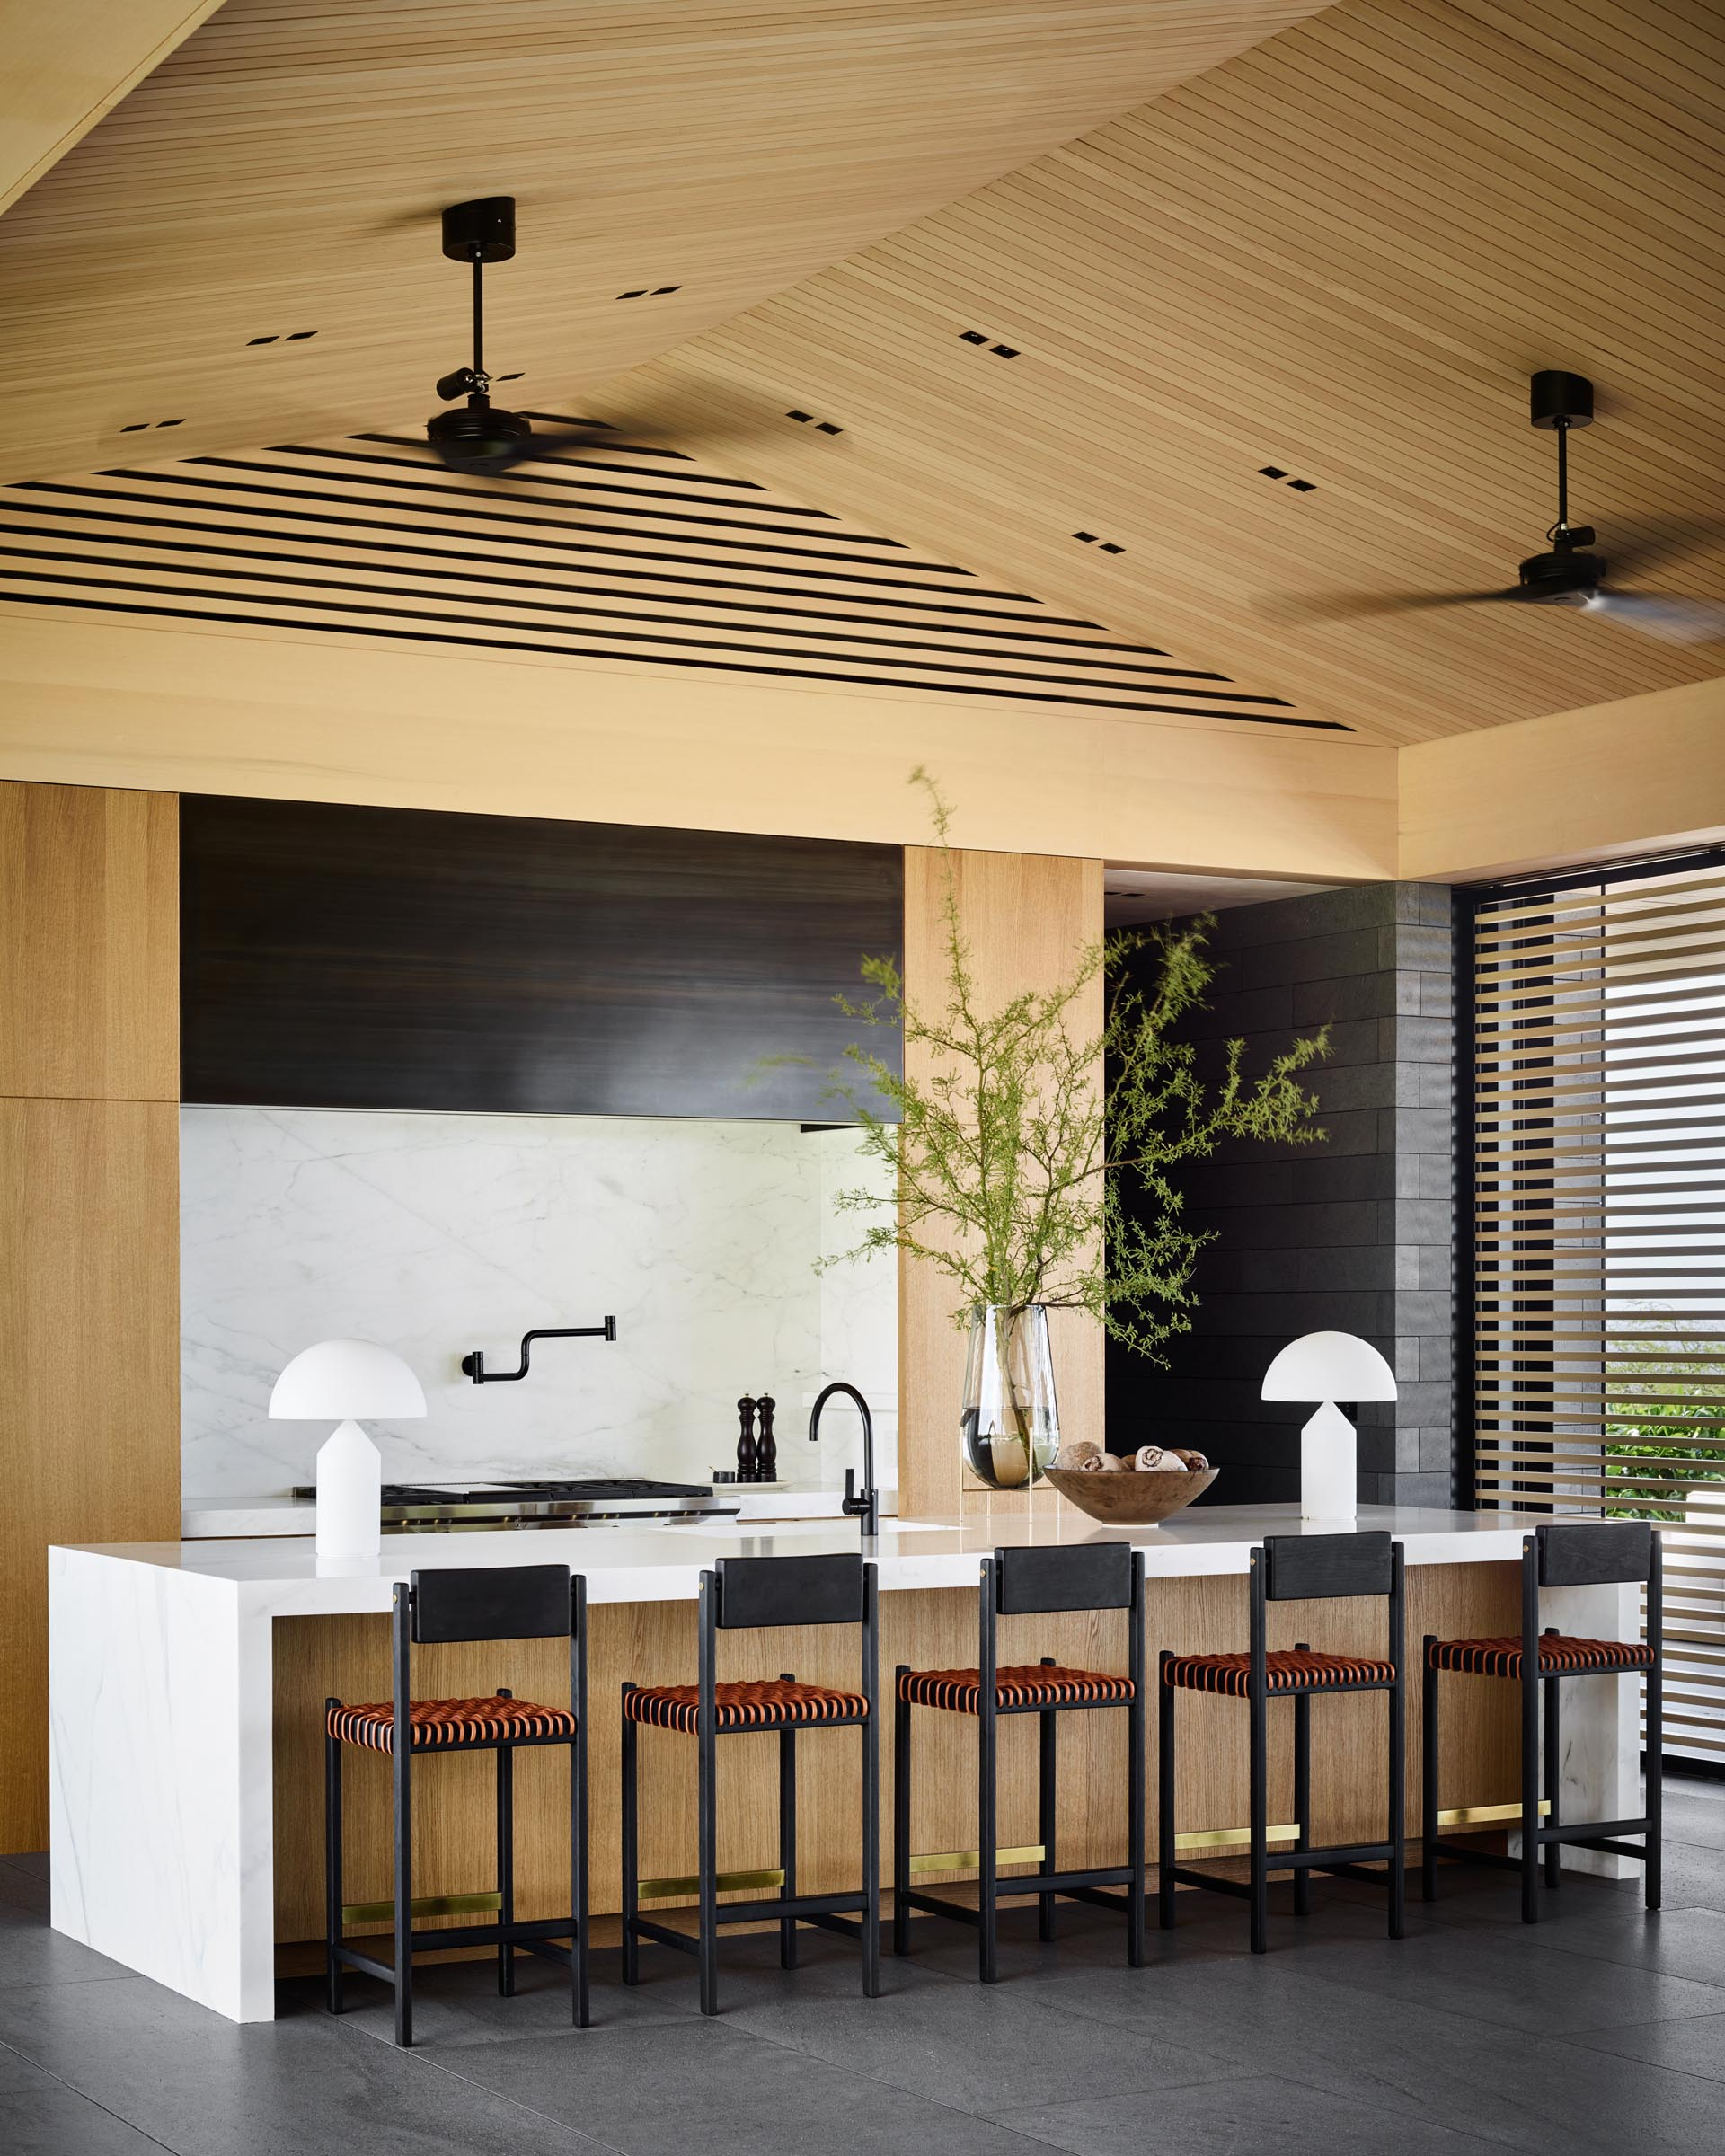 This modern kitchen includes a large island with room for seating and a waterfall countertop. Behind the kitchen, there's a walk-through pantry with wood cabinets and open shelving.